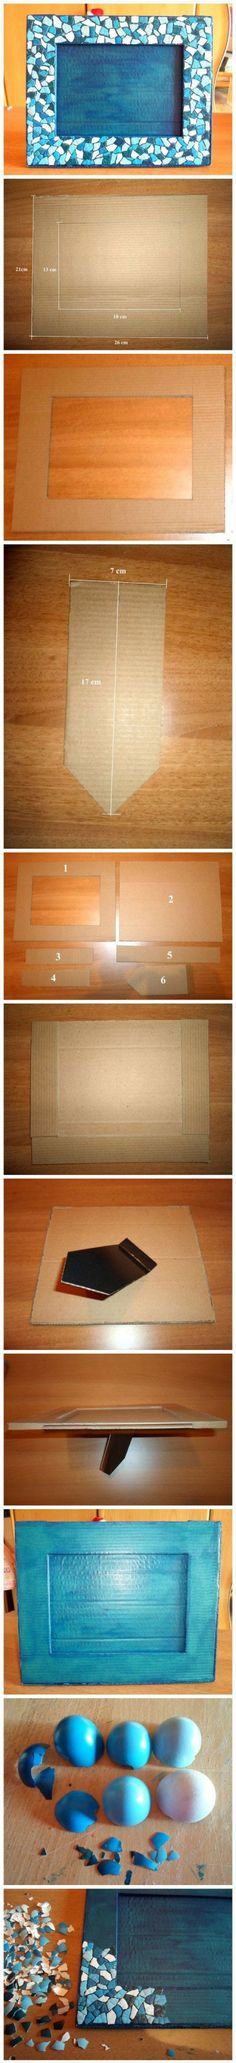 diy handmade painted egg shell mosiac picture frame